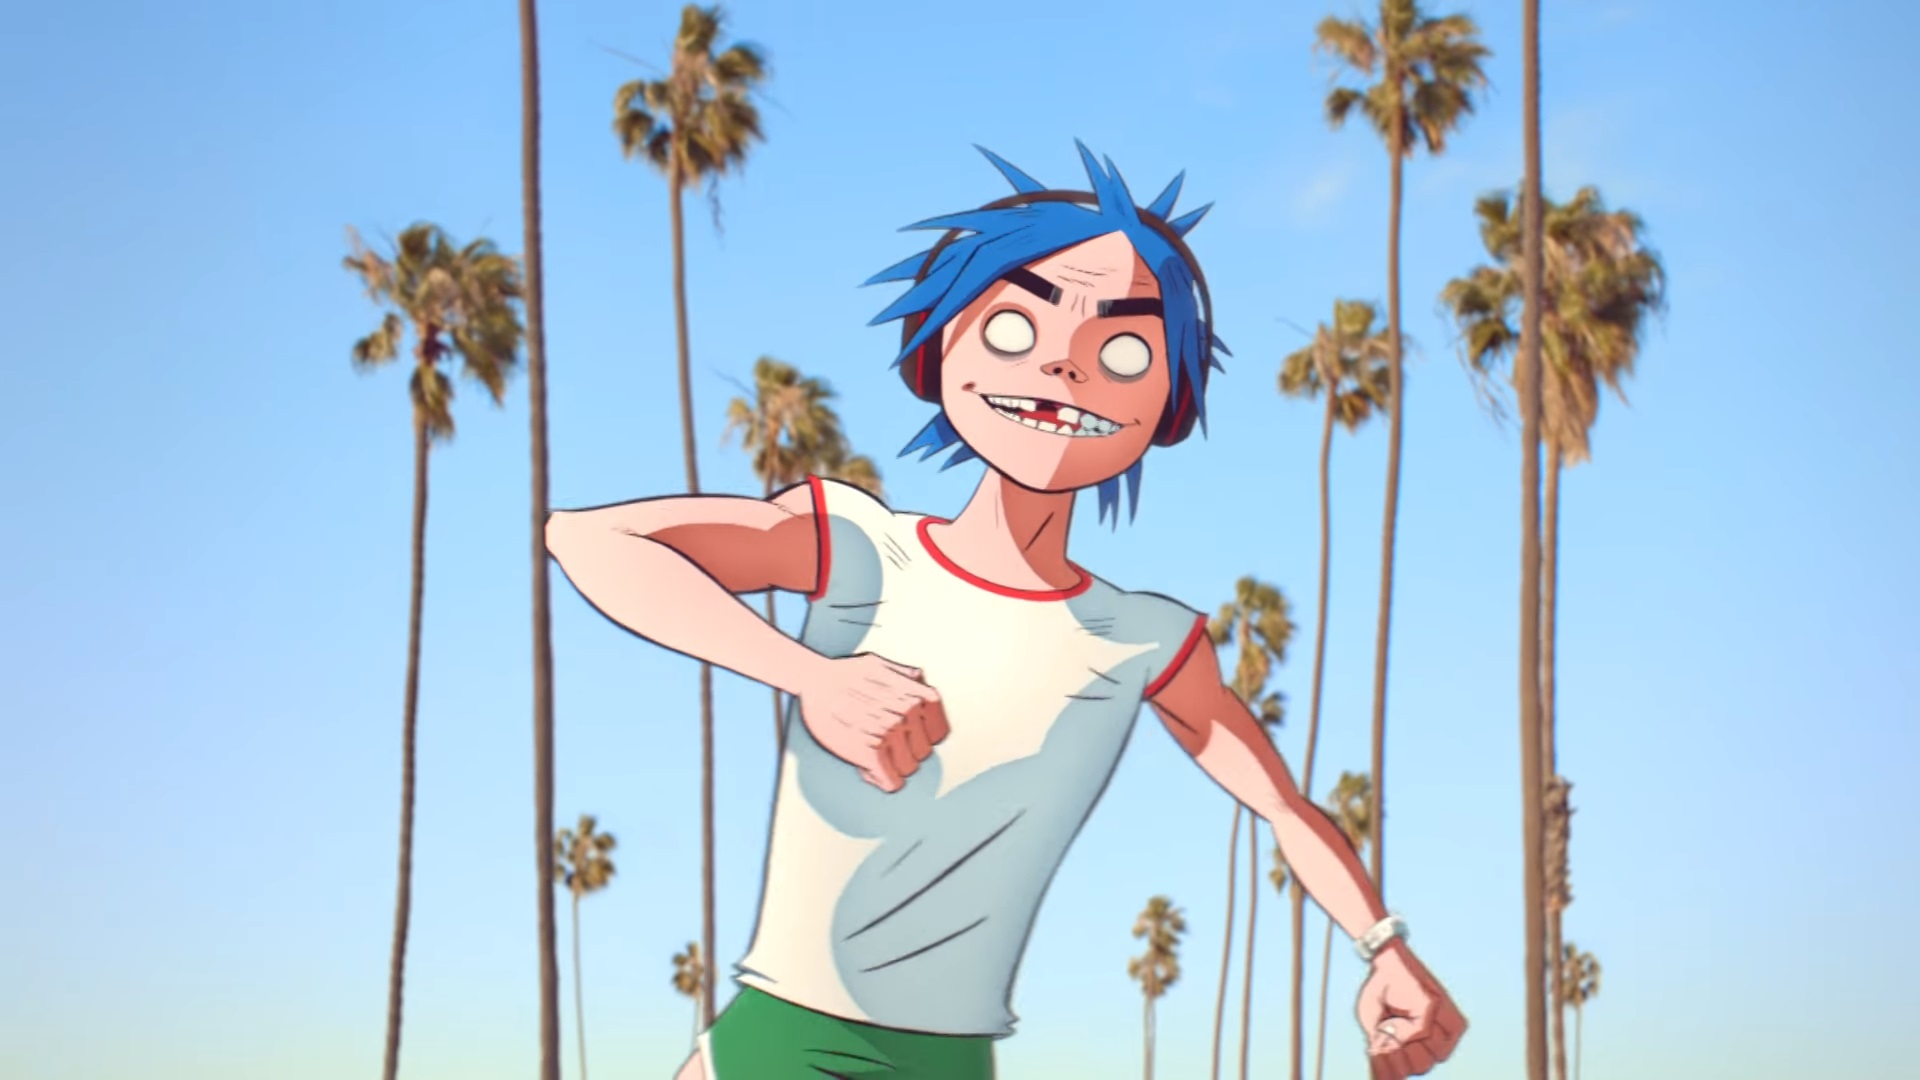 Heres The Music Video For Gorillaz New Catchy Song Humility